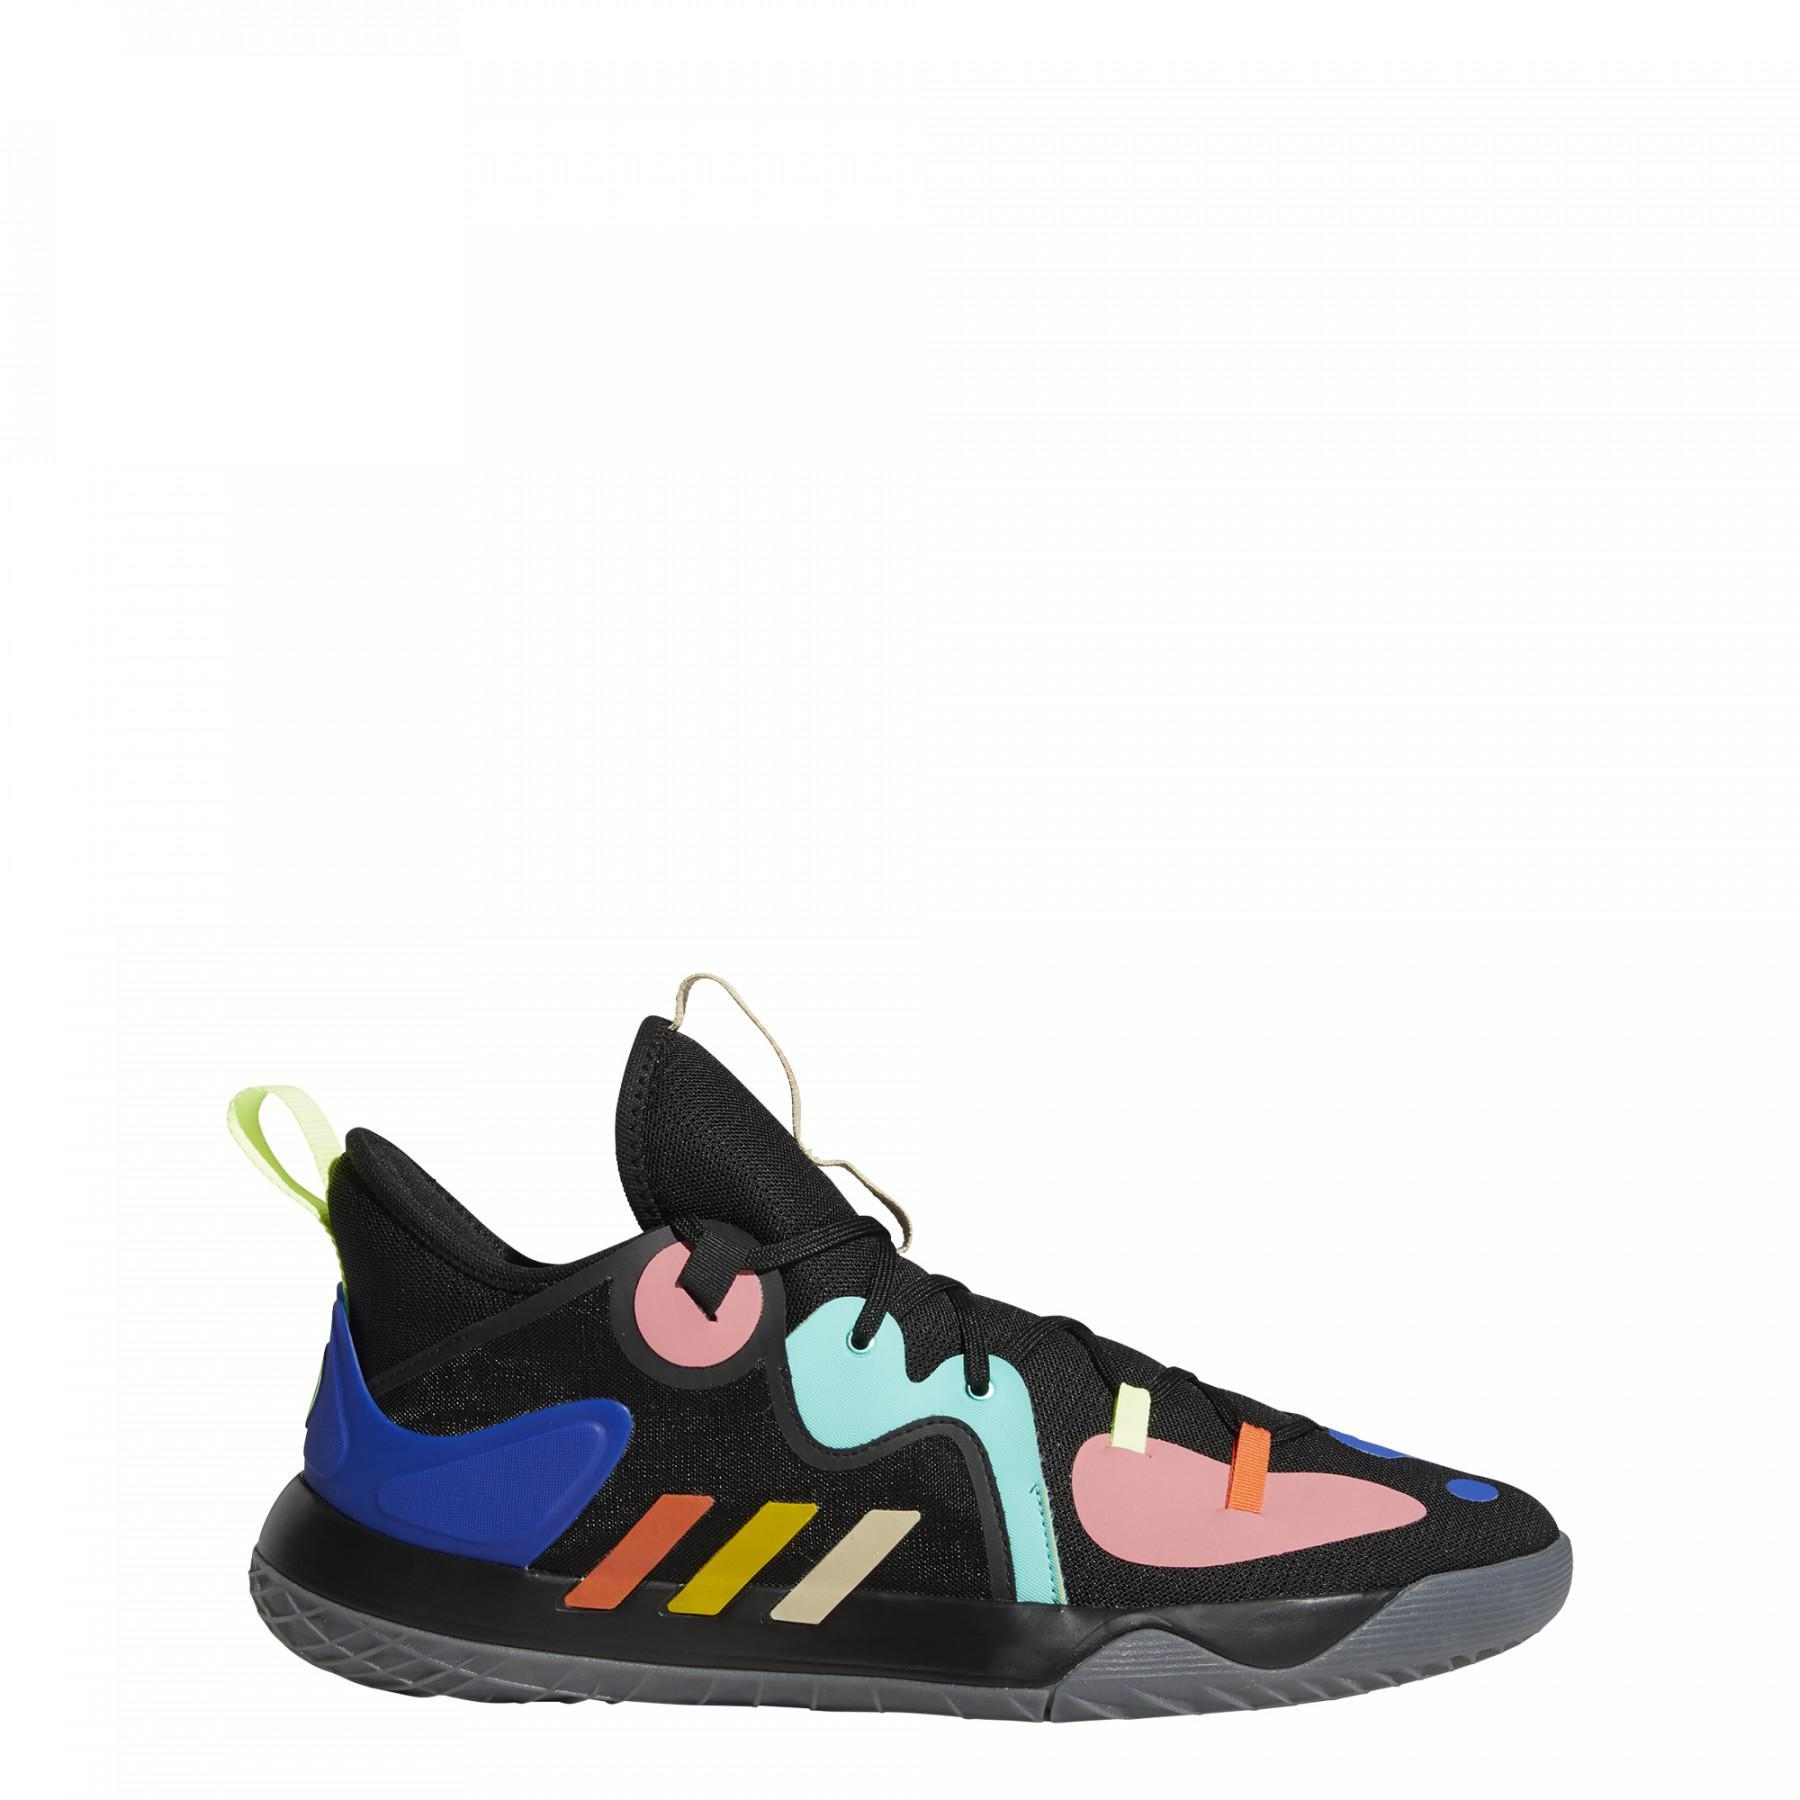 adidas Harden Stepback 2 Shoes